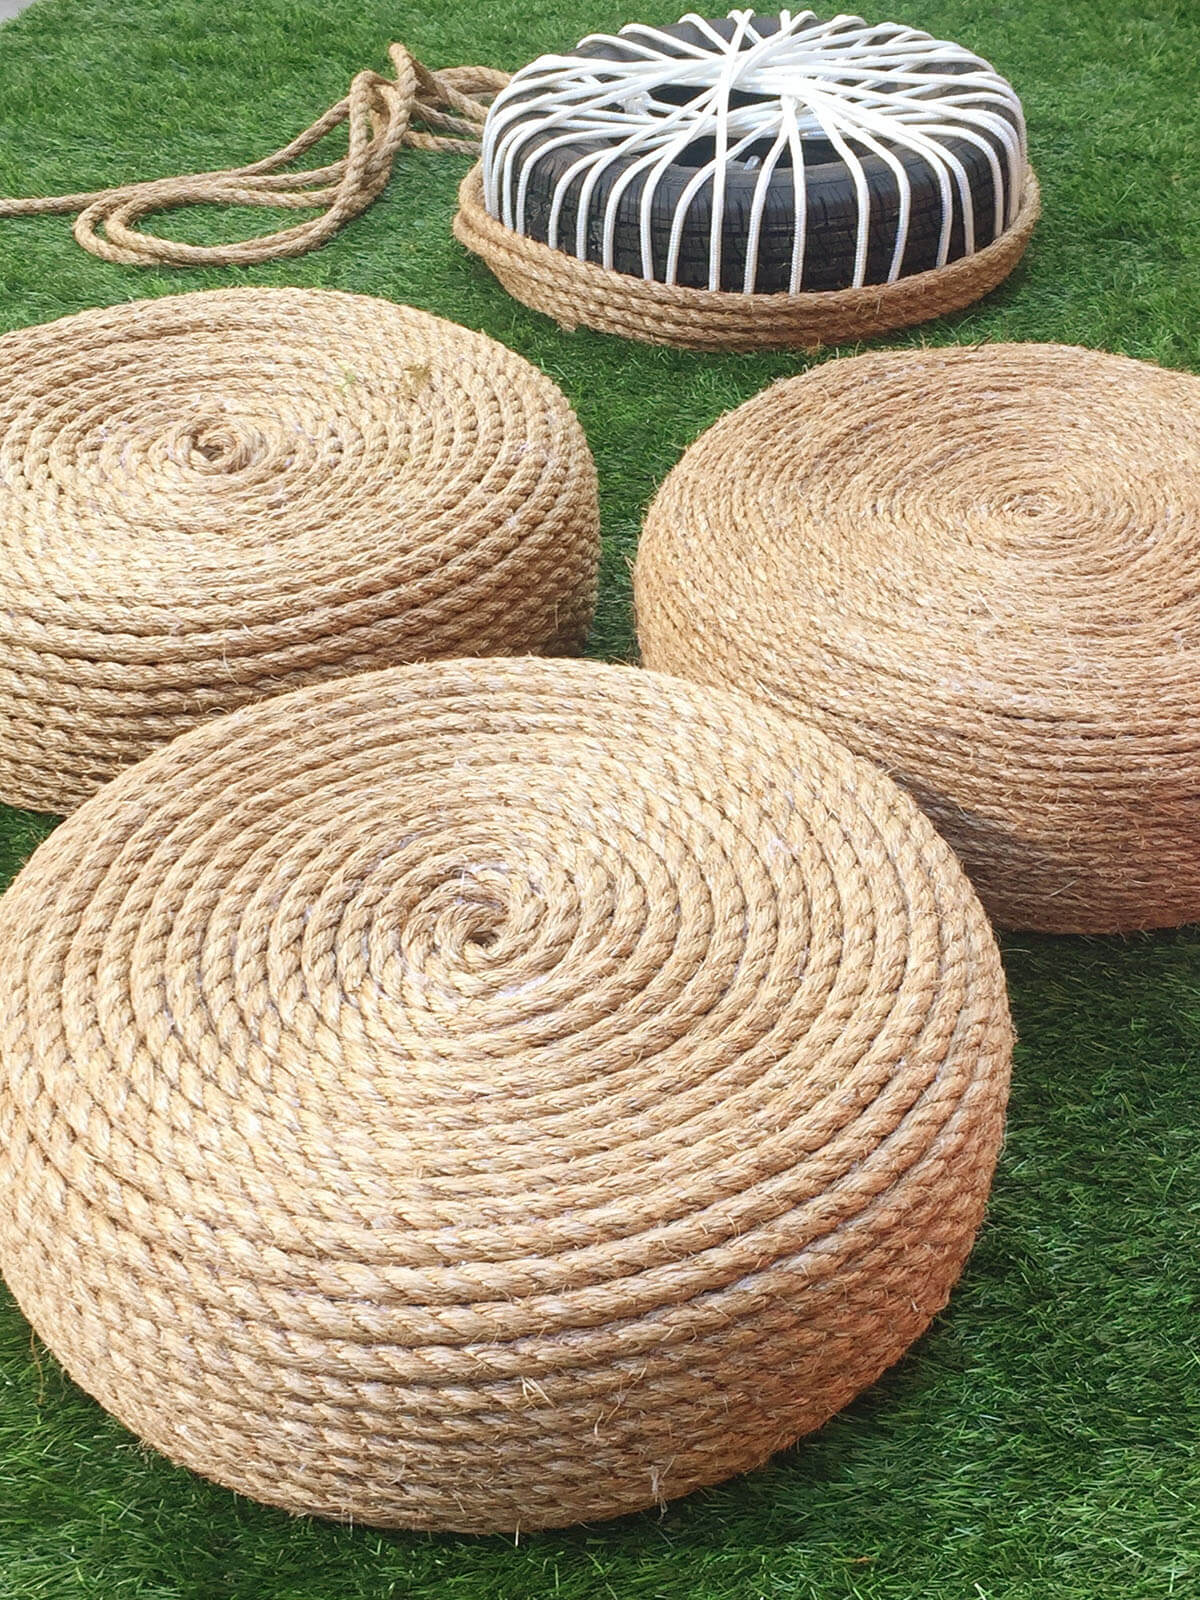 Spiral Rope Tire Seating for the Outdoors